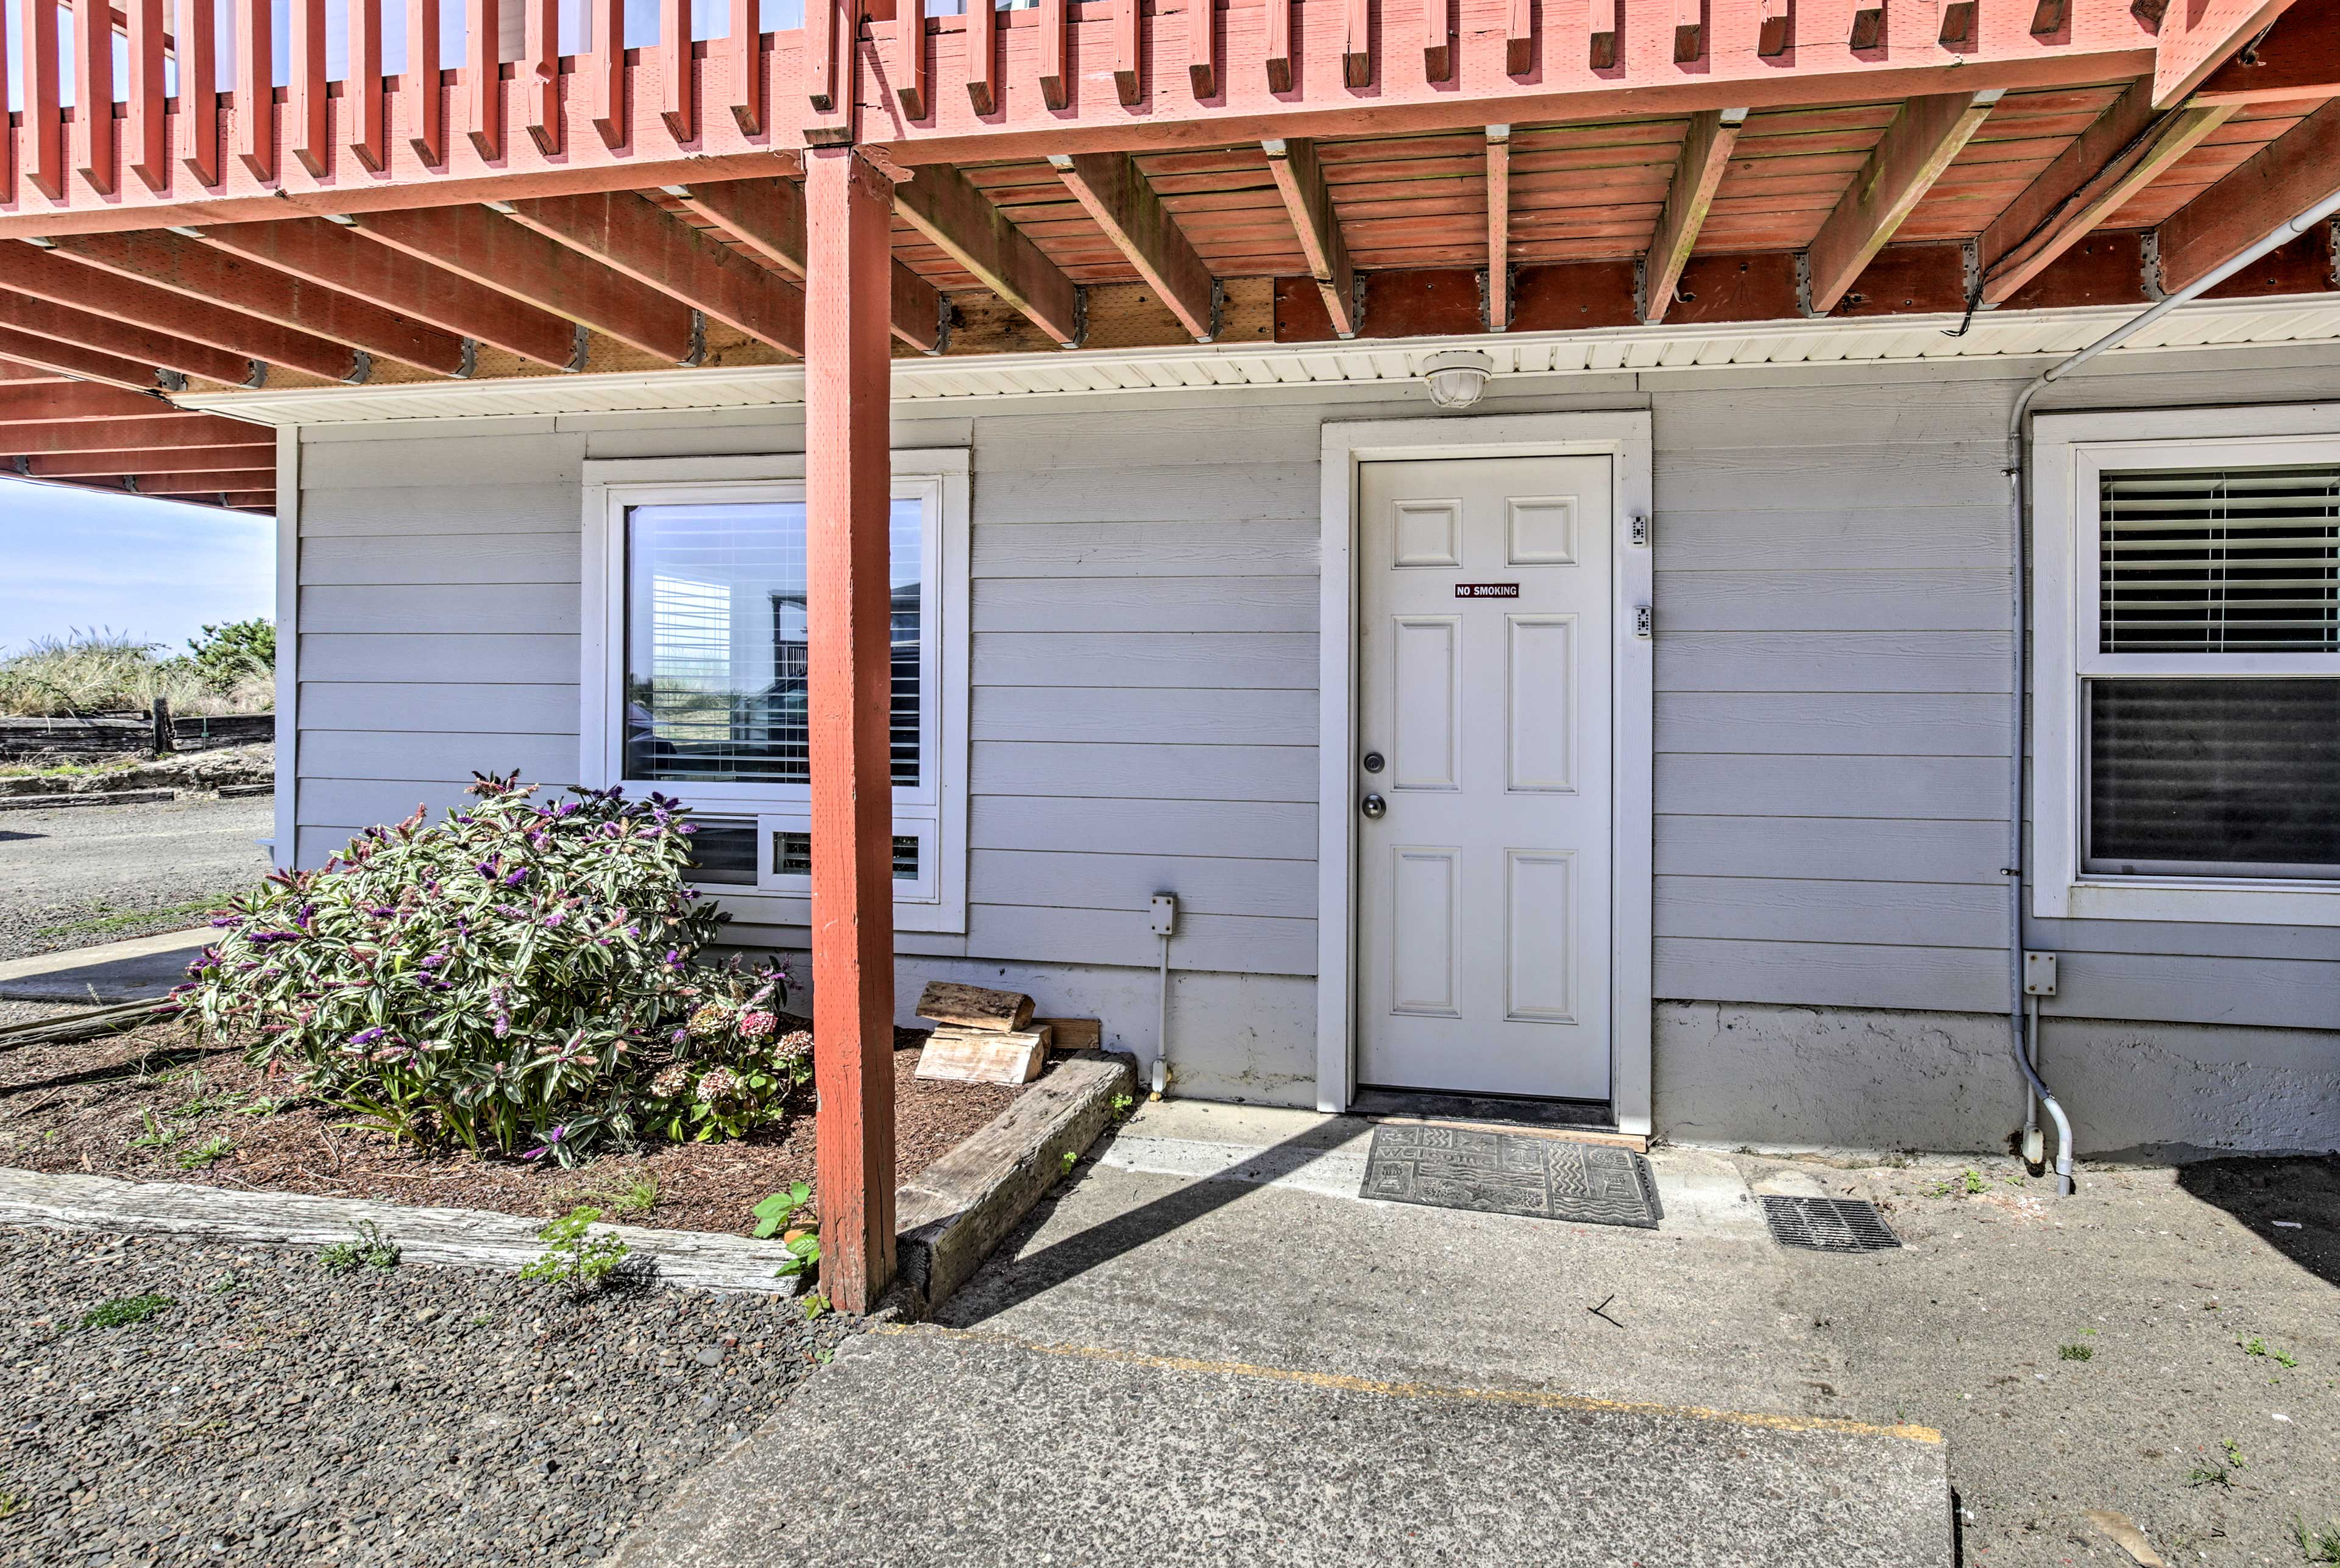 The condo is easily accessible, and right next to the beach.